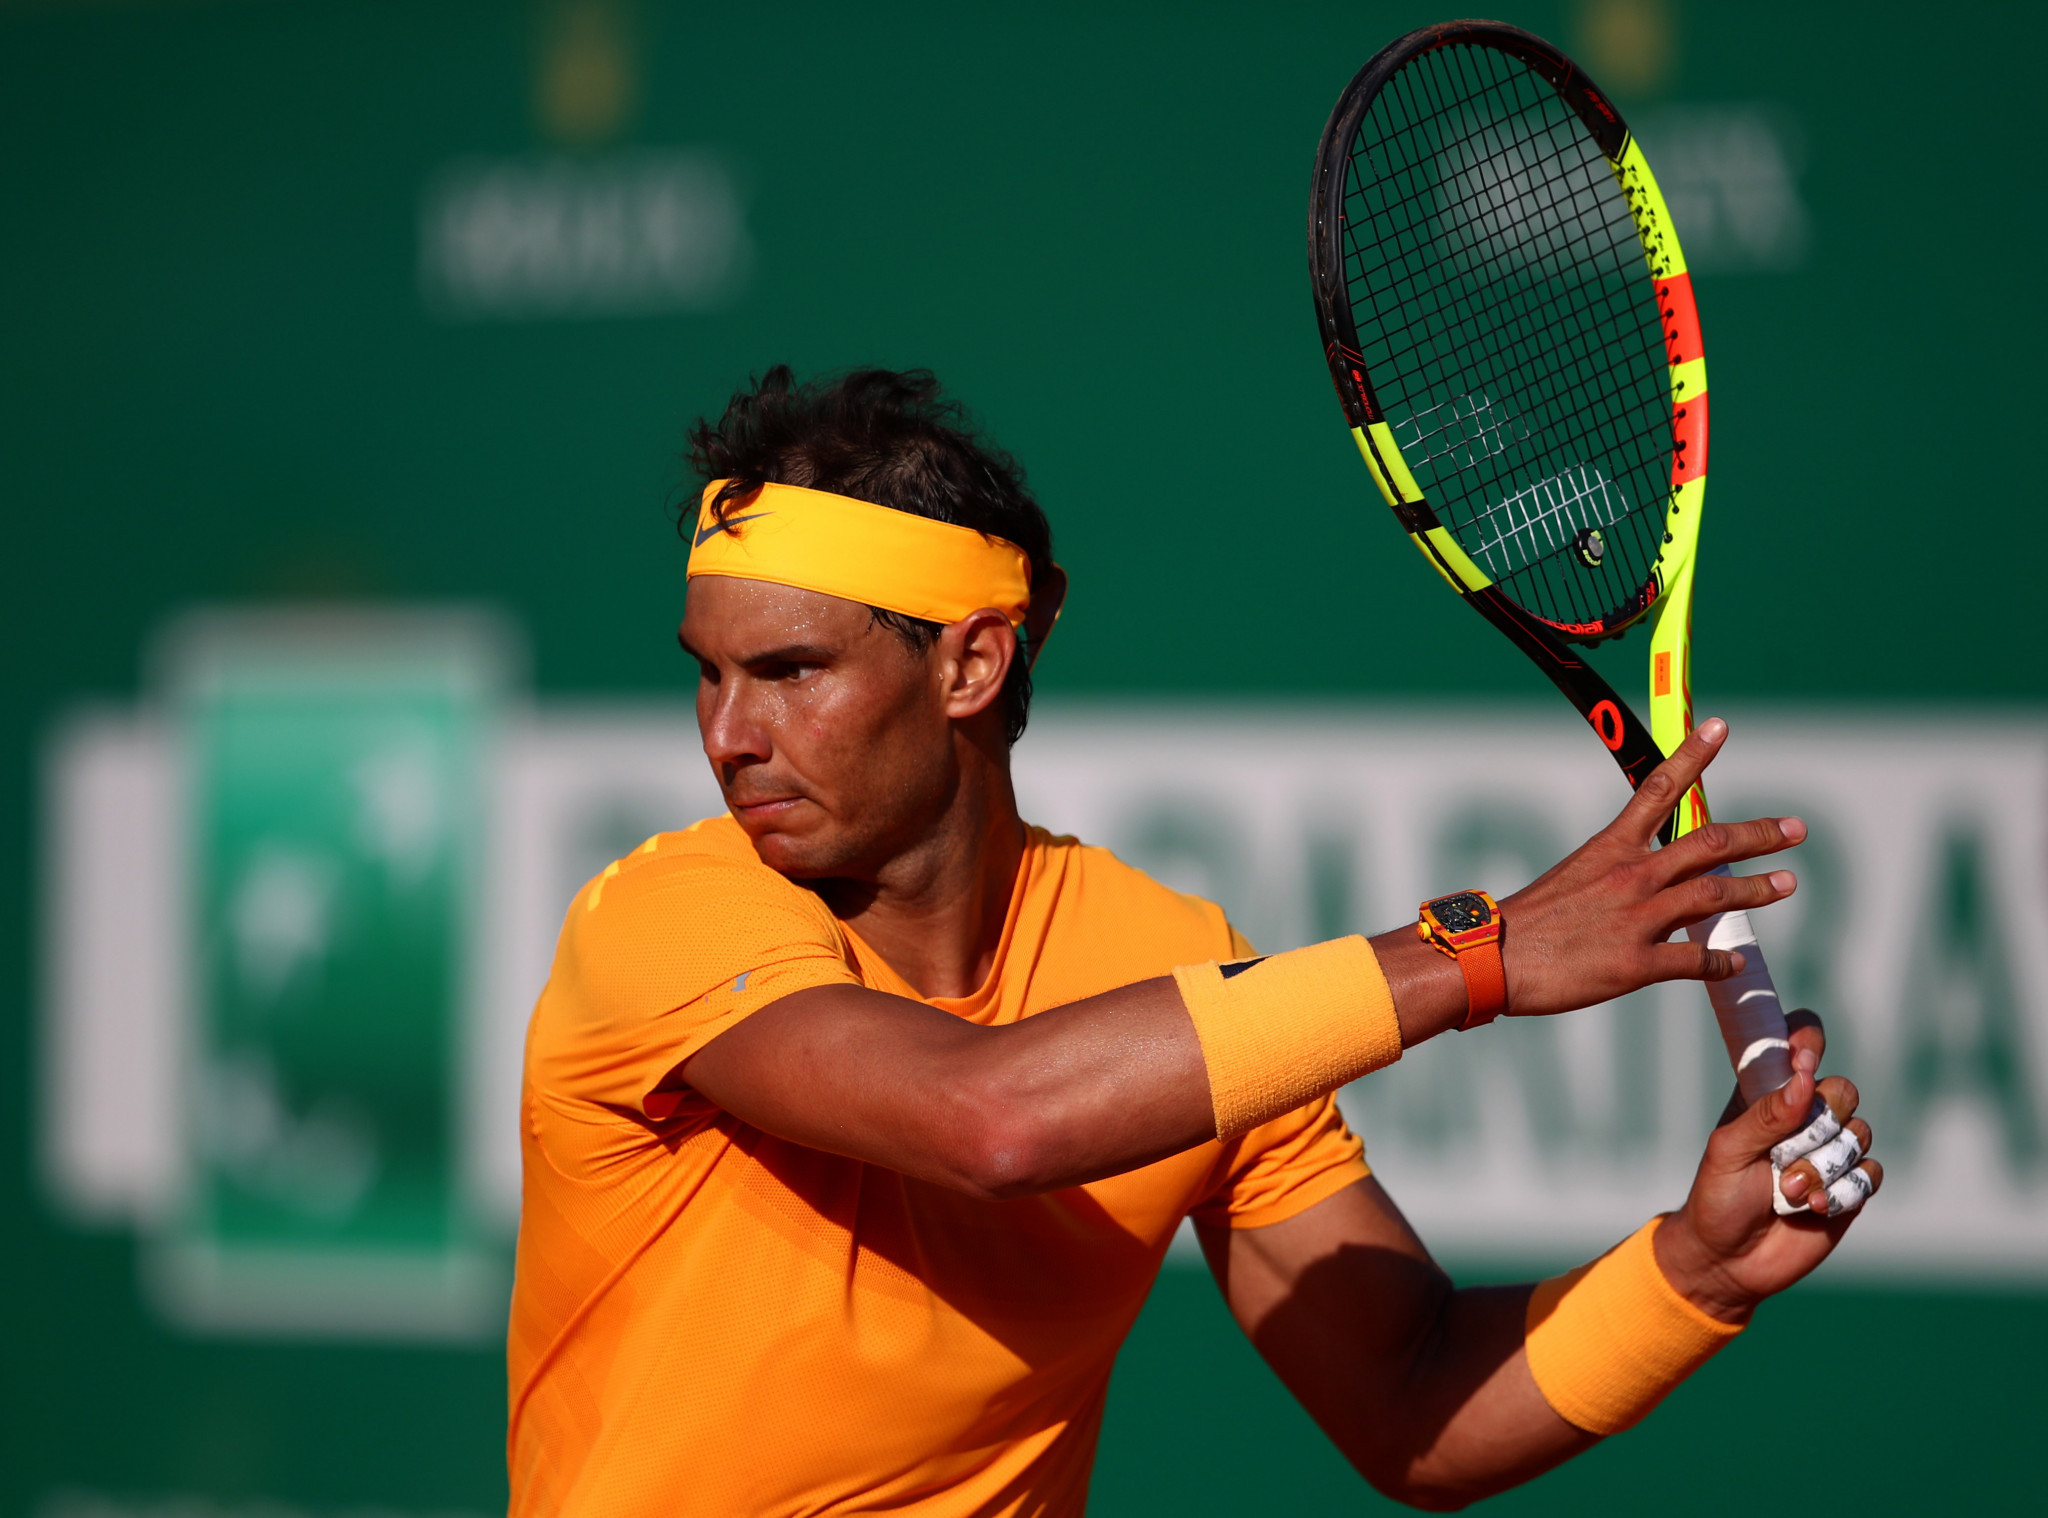 Nadal still heading for 11th Monte Carlo win, but Djokovic makes an early exit